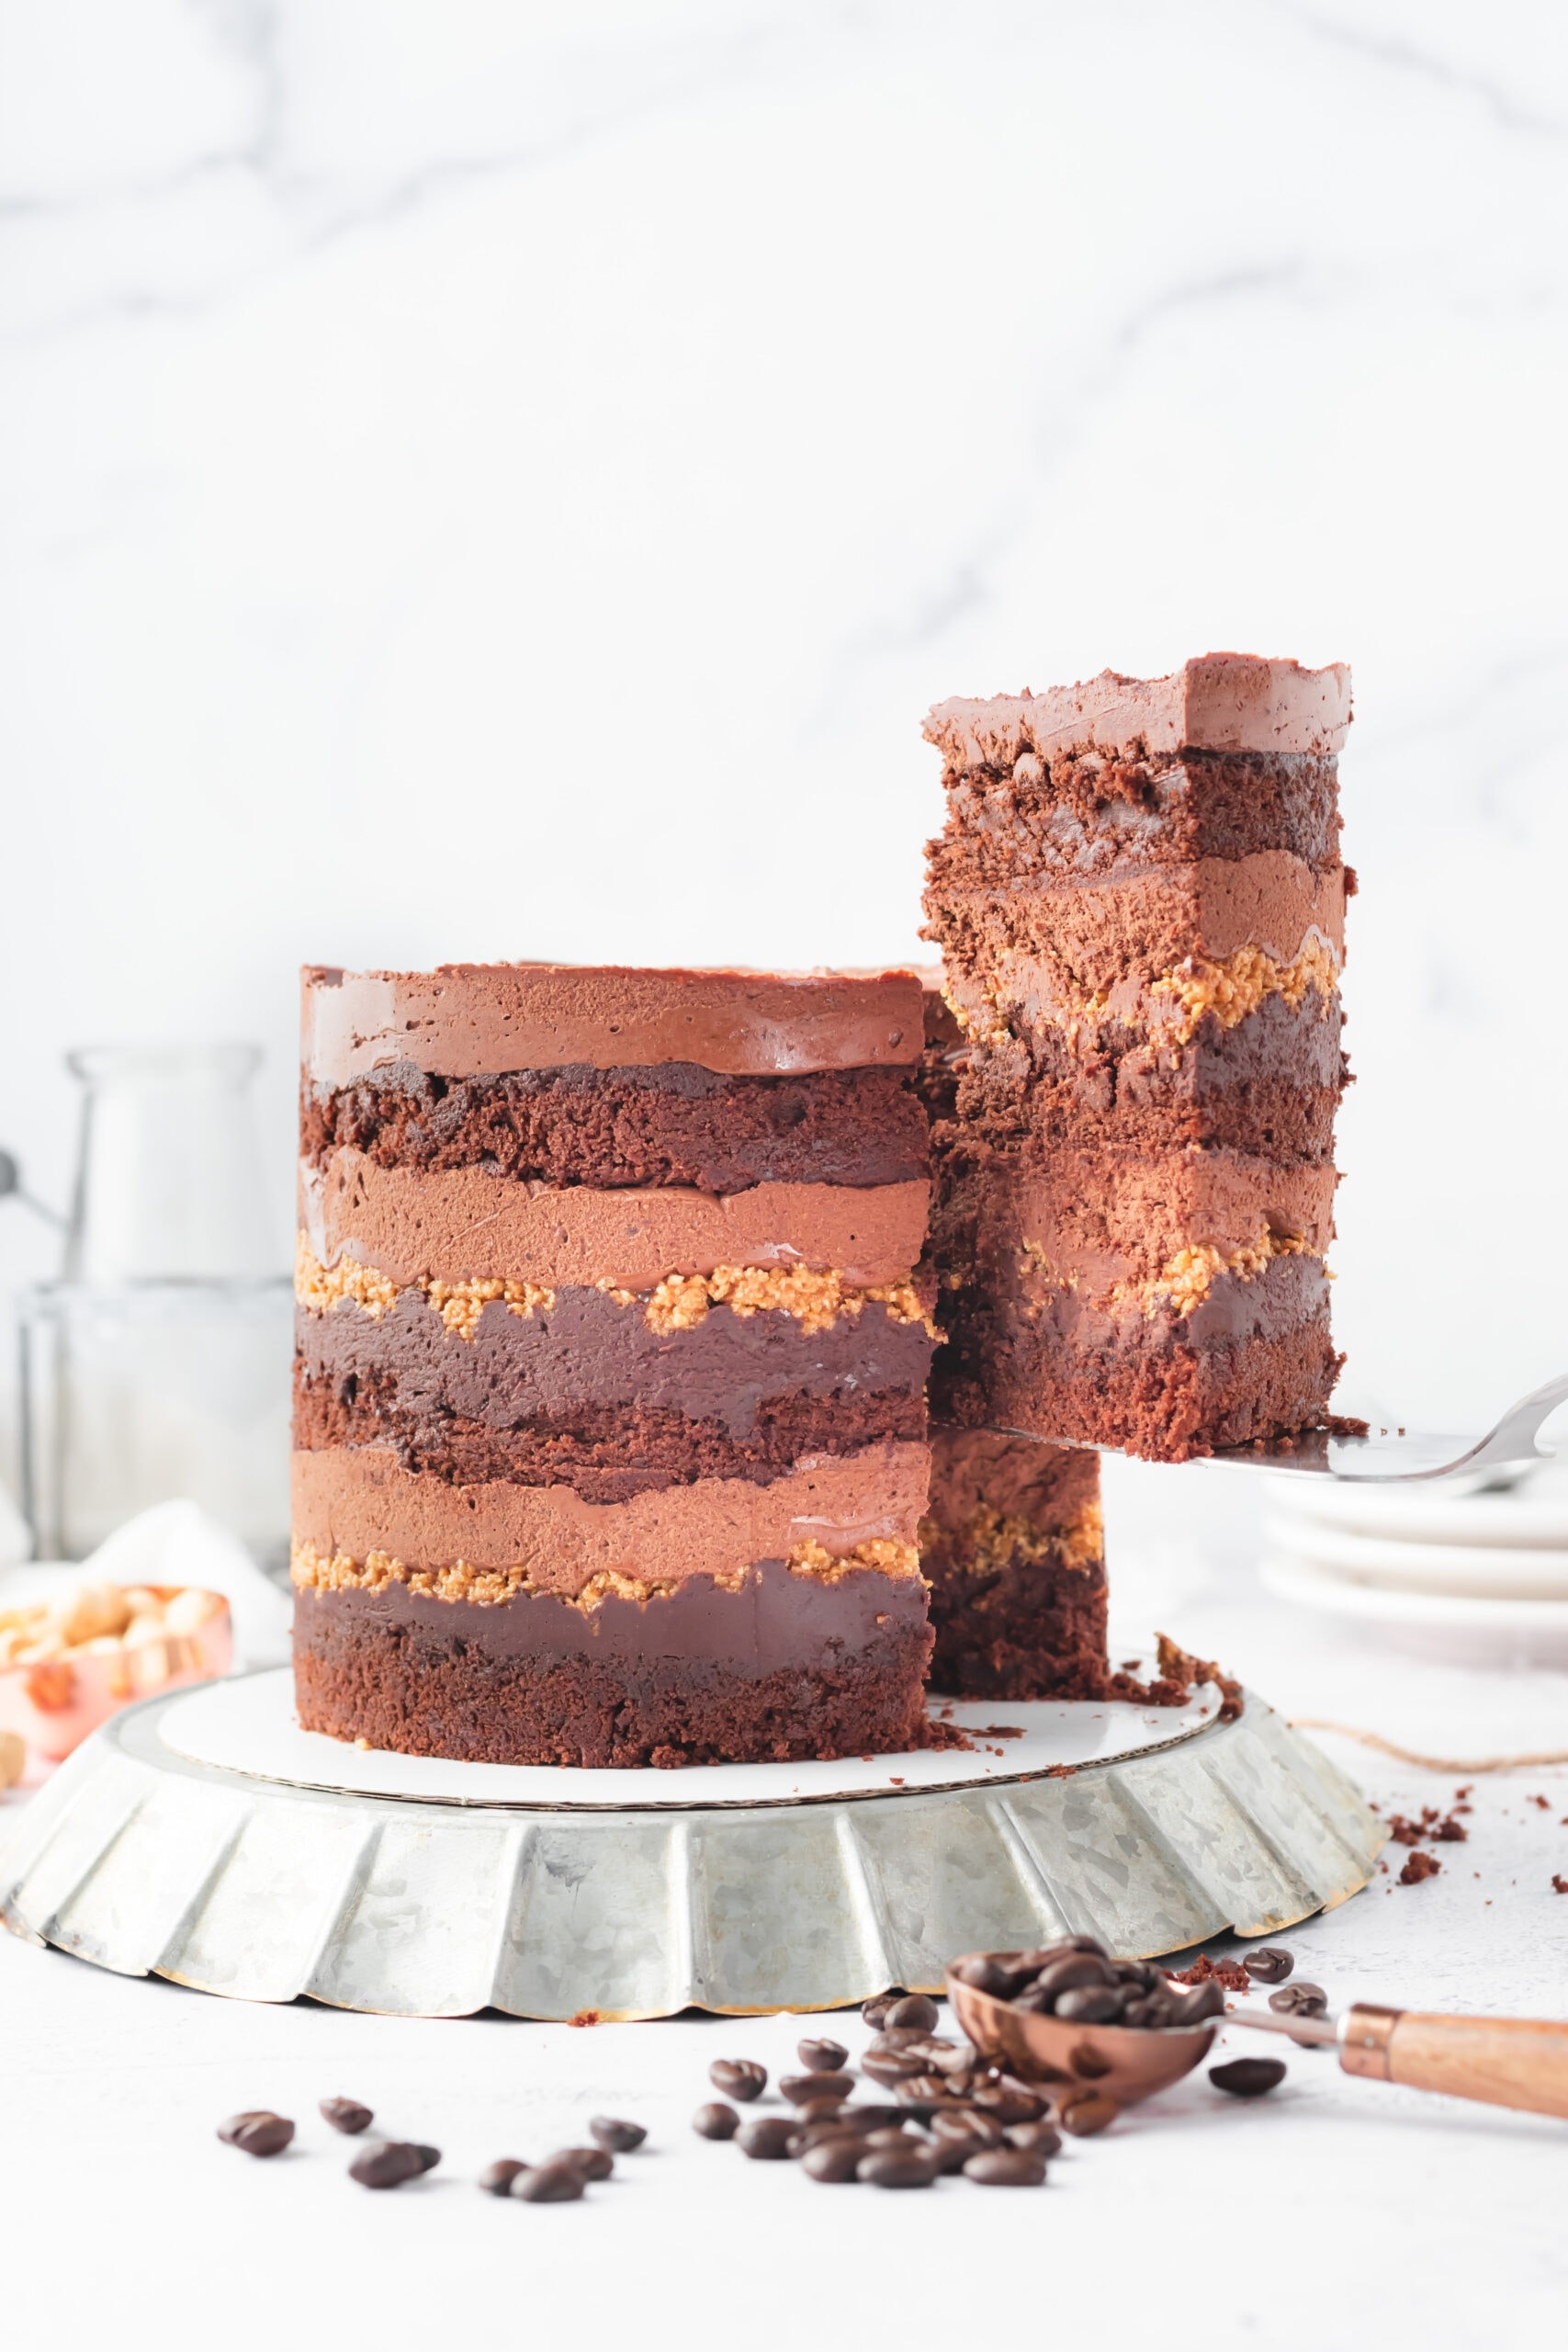 a large slice of cake being lifted out of a mocha hazelnut layer cake